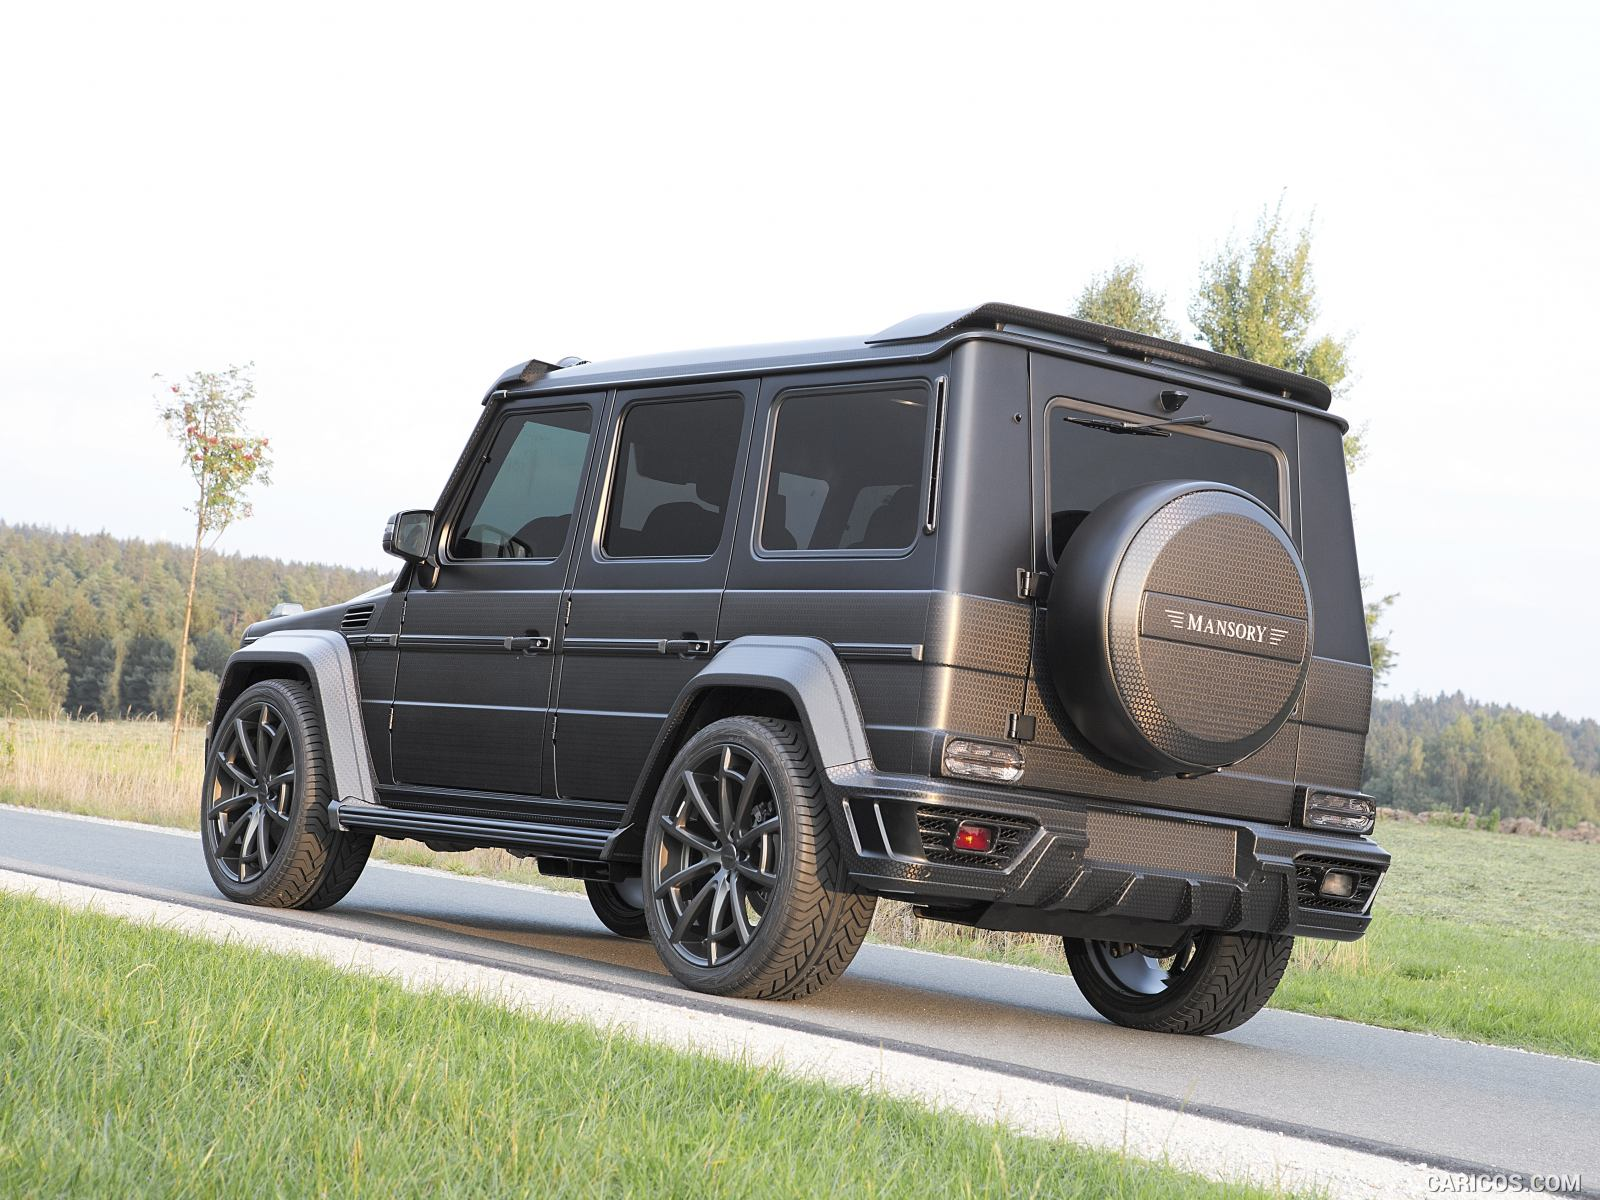 Mansory rear c pillar cover for mercedes benz g class g63 for Mercedes benz g class parts